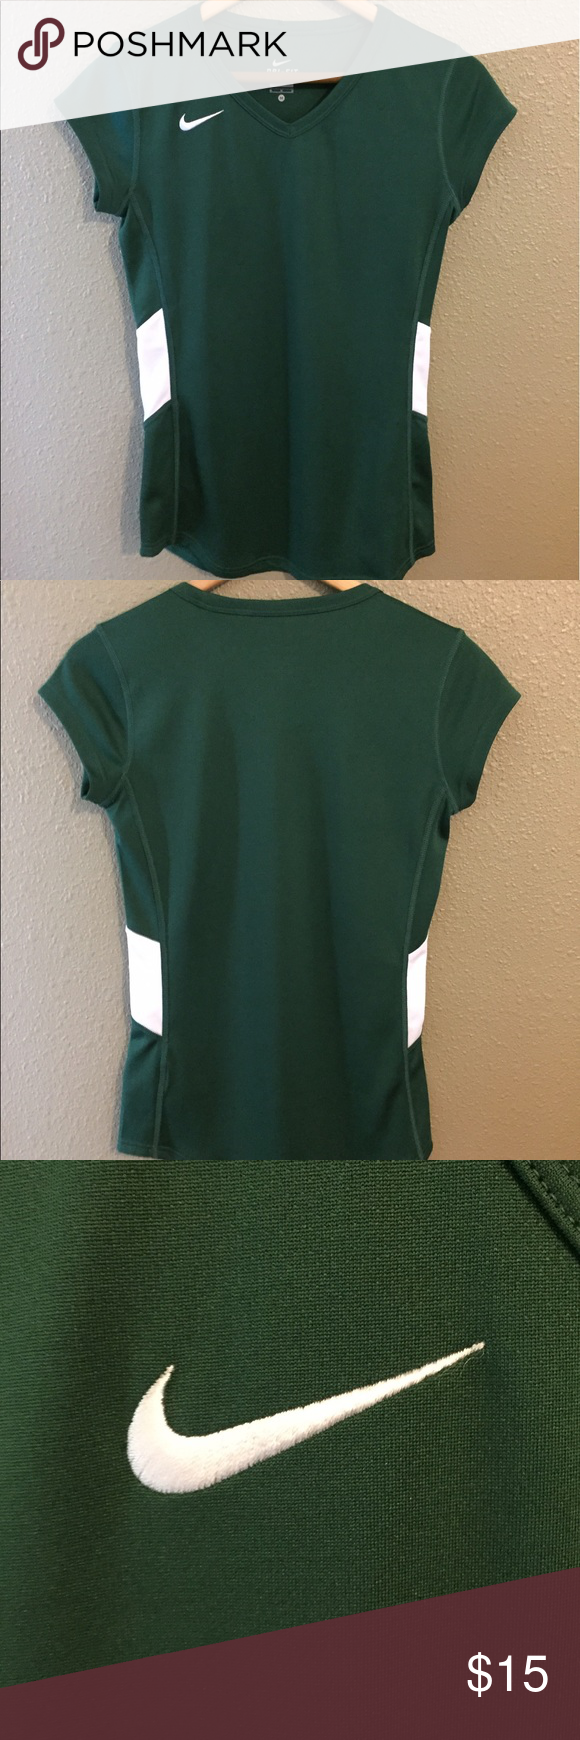 Nike V Neck Shirt Green v neck Nike shirt with white panels on the side. Two small imperfections on the front of Shirt but hardly noticeable (top left hand side on, middle right side). Other than that this shirt is in perfect condition! Nike Tops Tees - Short Sleeve